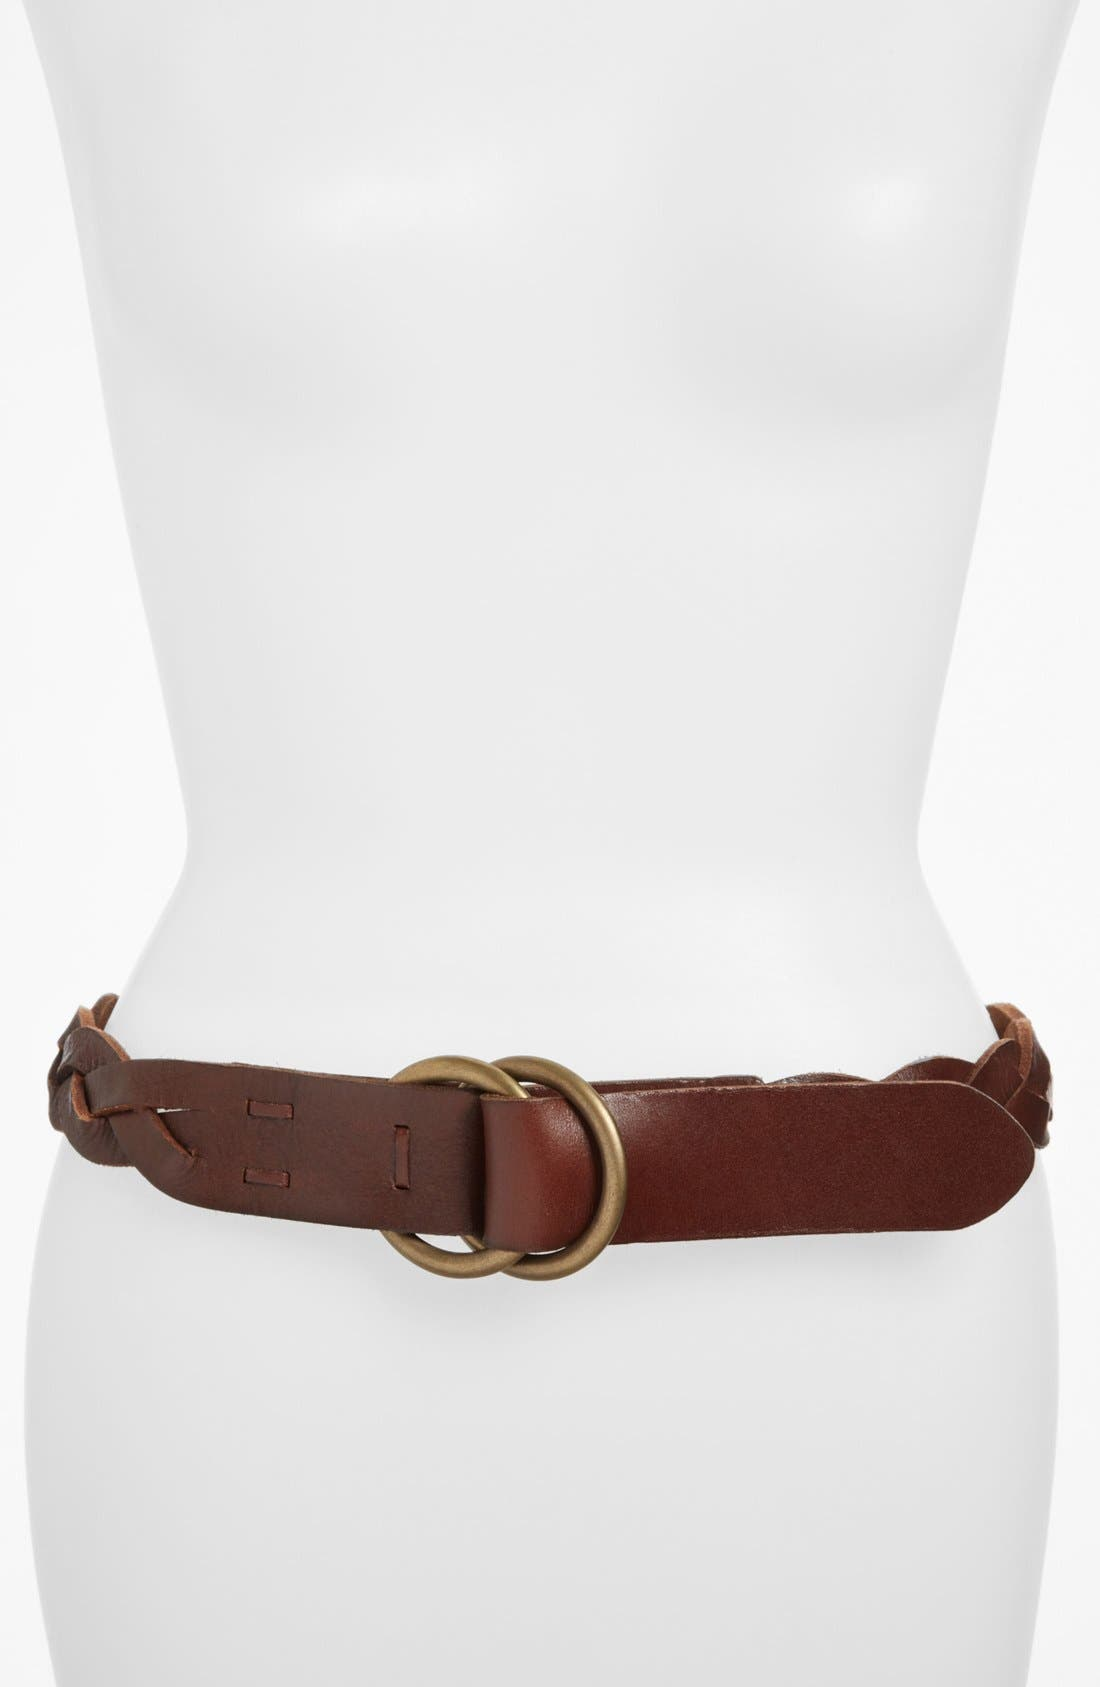 Alternate Image 1 Selected - Lauren Ralph Lauren 'Miracle Braid' Leather Belt